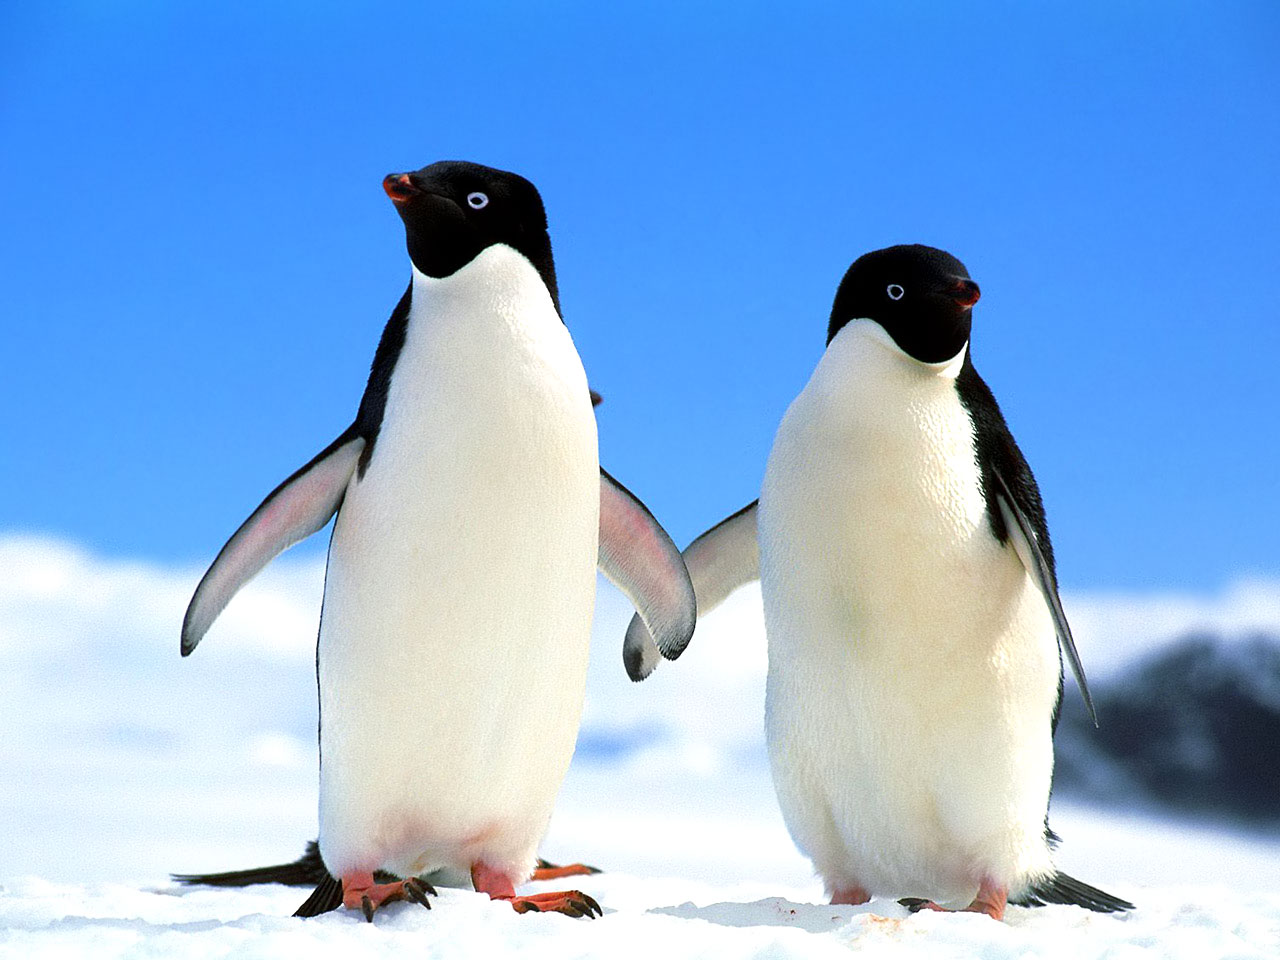 Cute Penguins in Lov HD Wallpaper Background Images 1280x960